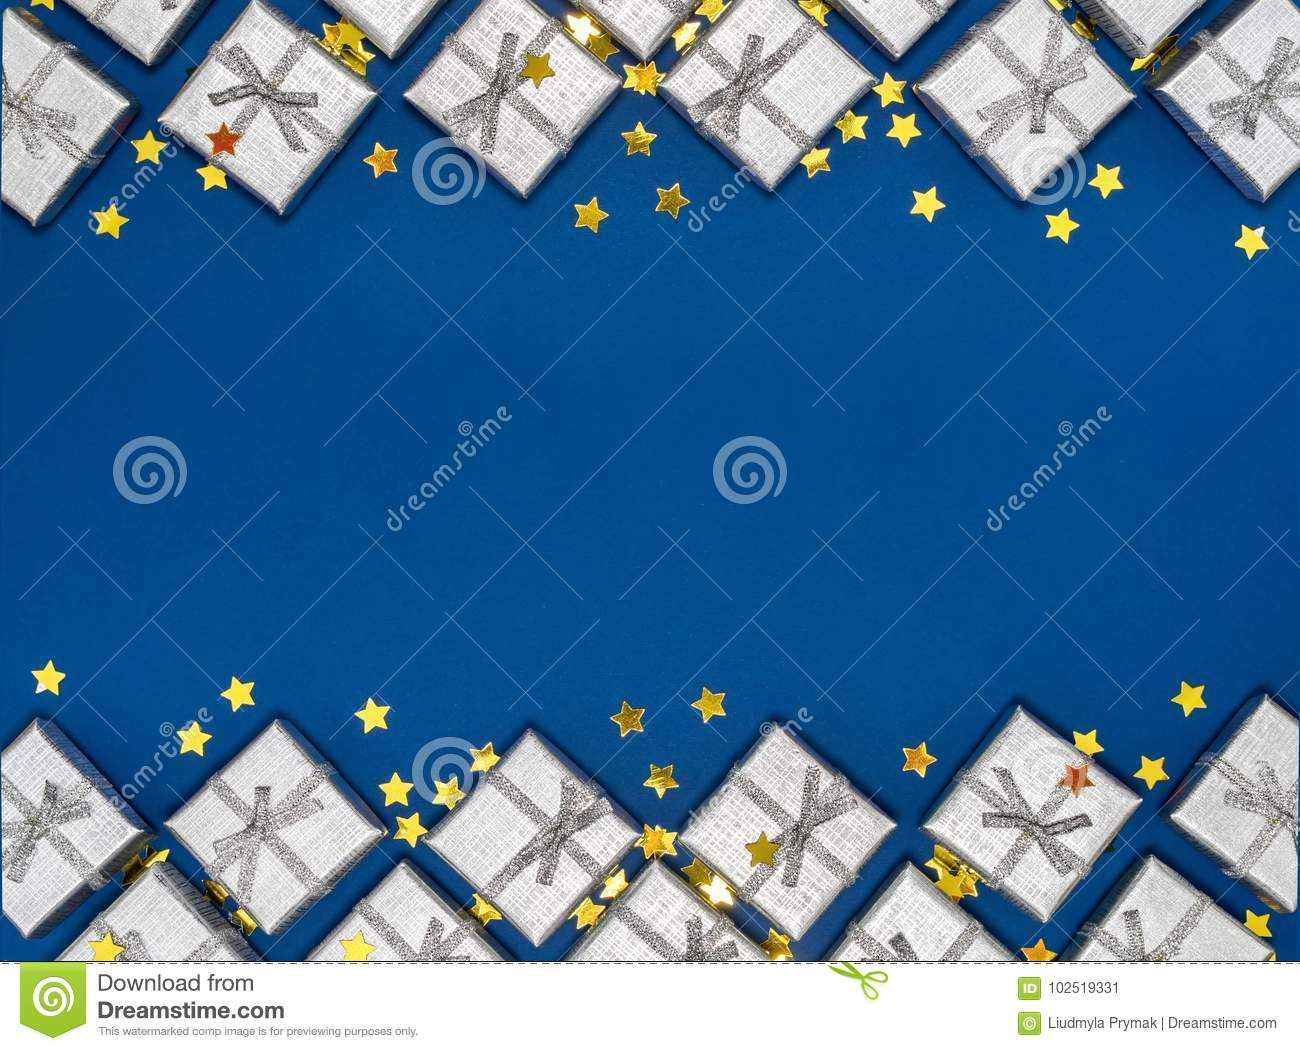 Border of silver shiny gifts and golden stars on blue background. Christmas decorations